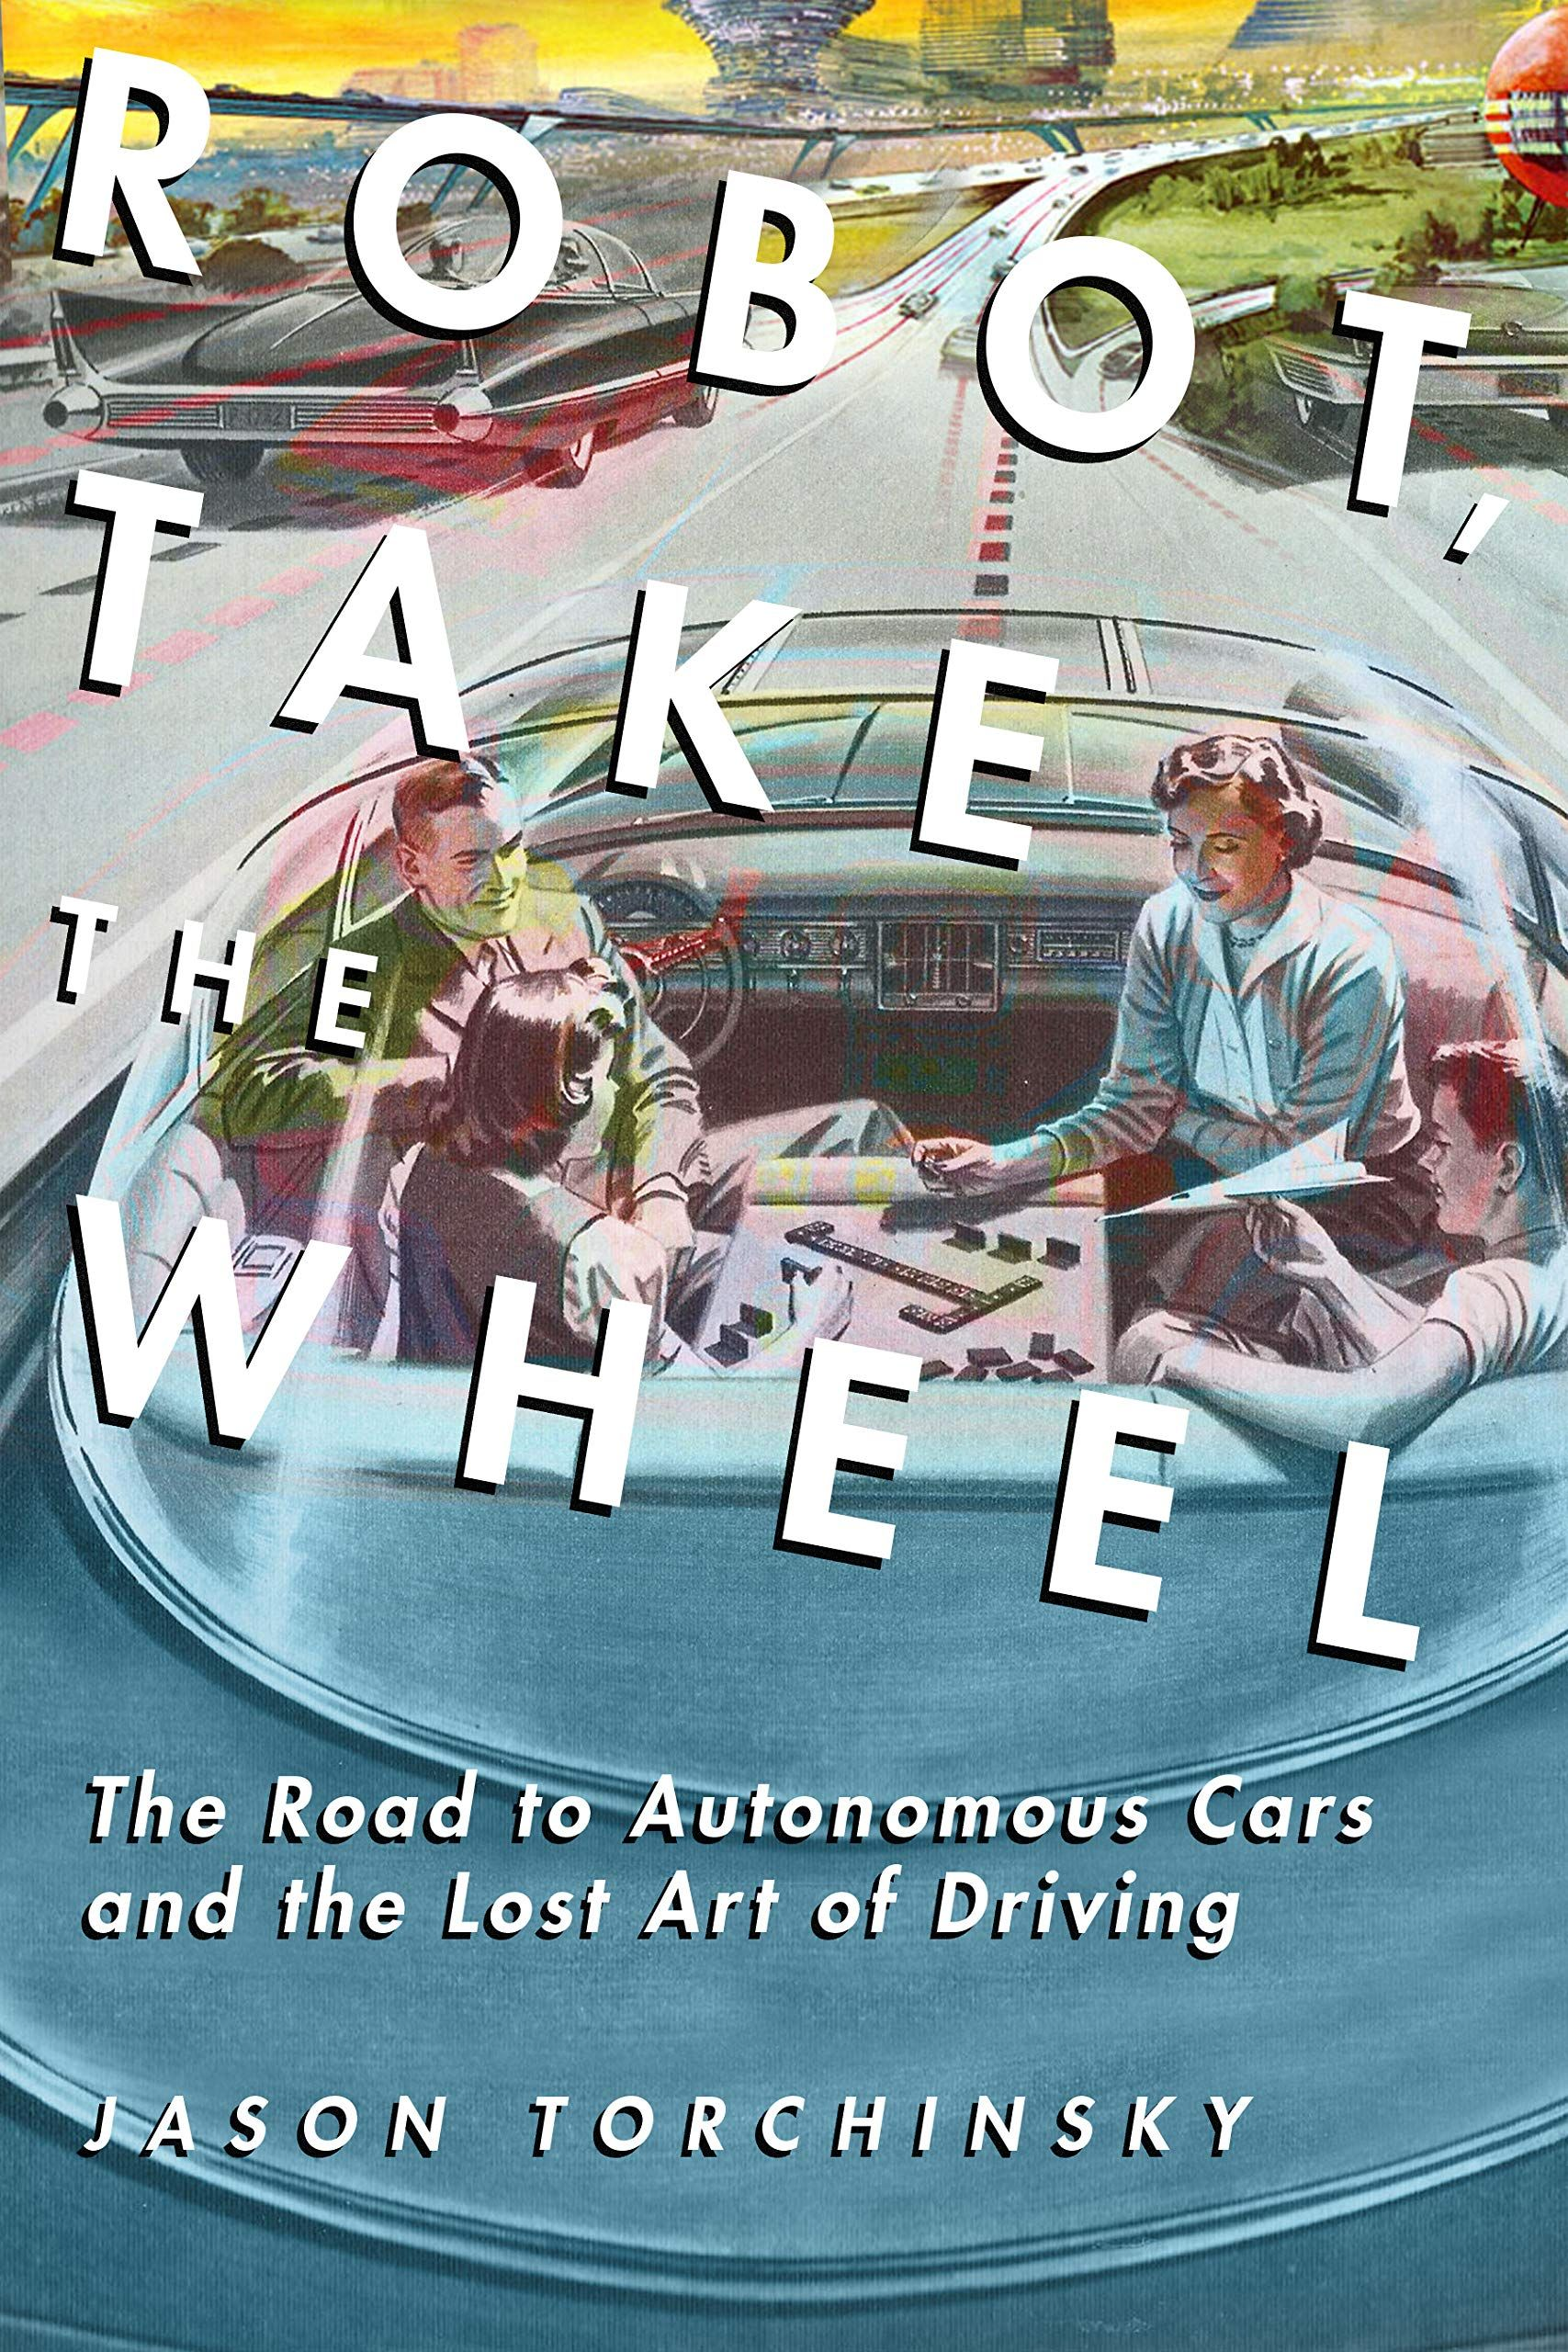 Robot Take The Wheel The Road To Autonomous Cars And The Lost Art Of Driving Jason Torchinsky 9781948062268 Amazon Com Books Lost Art Driving Art